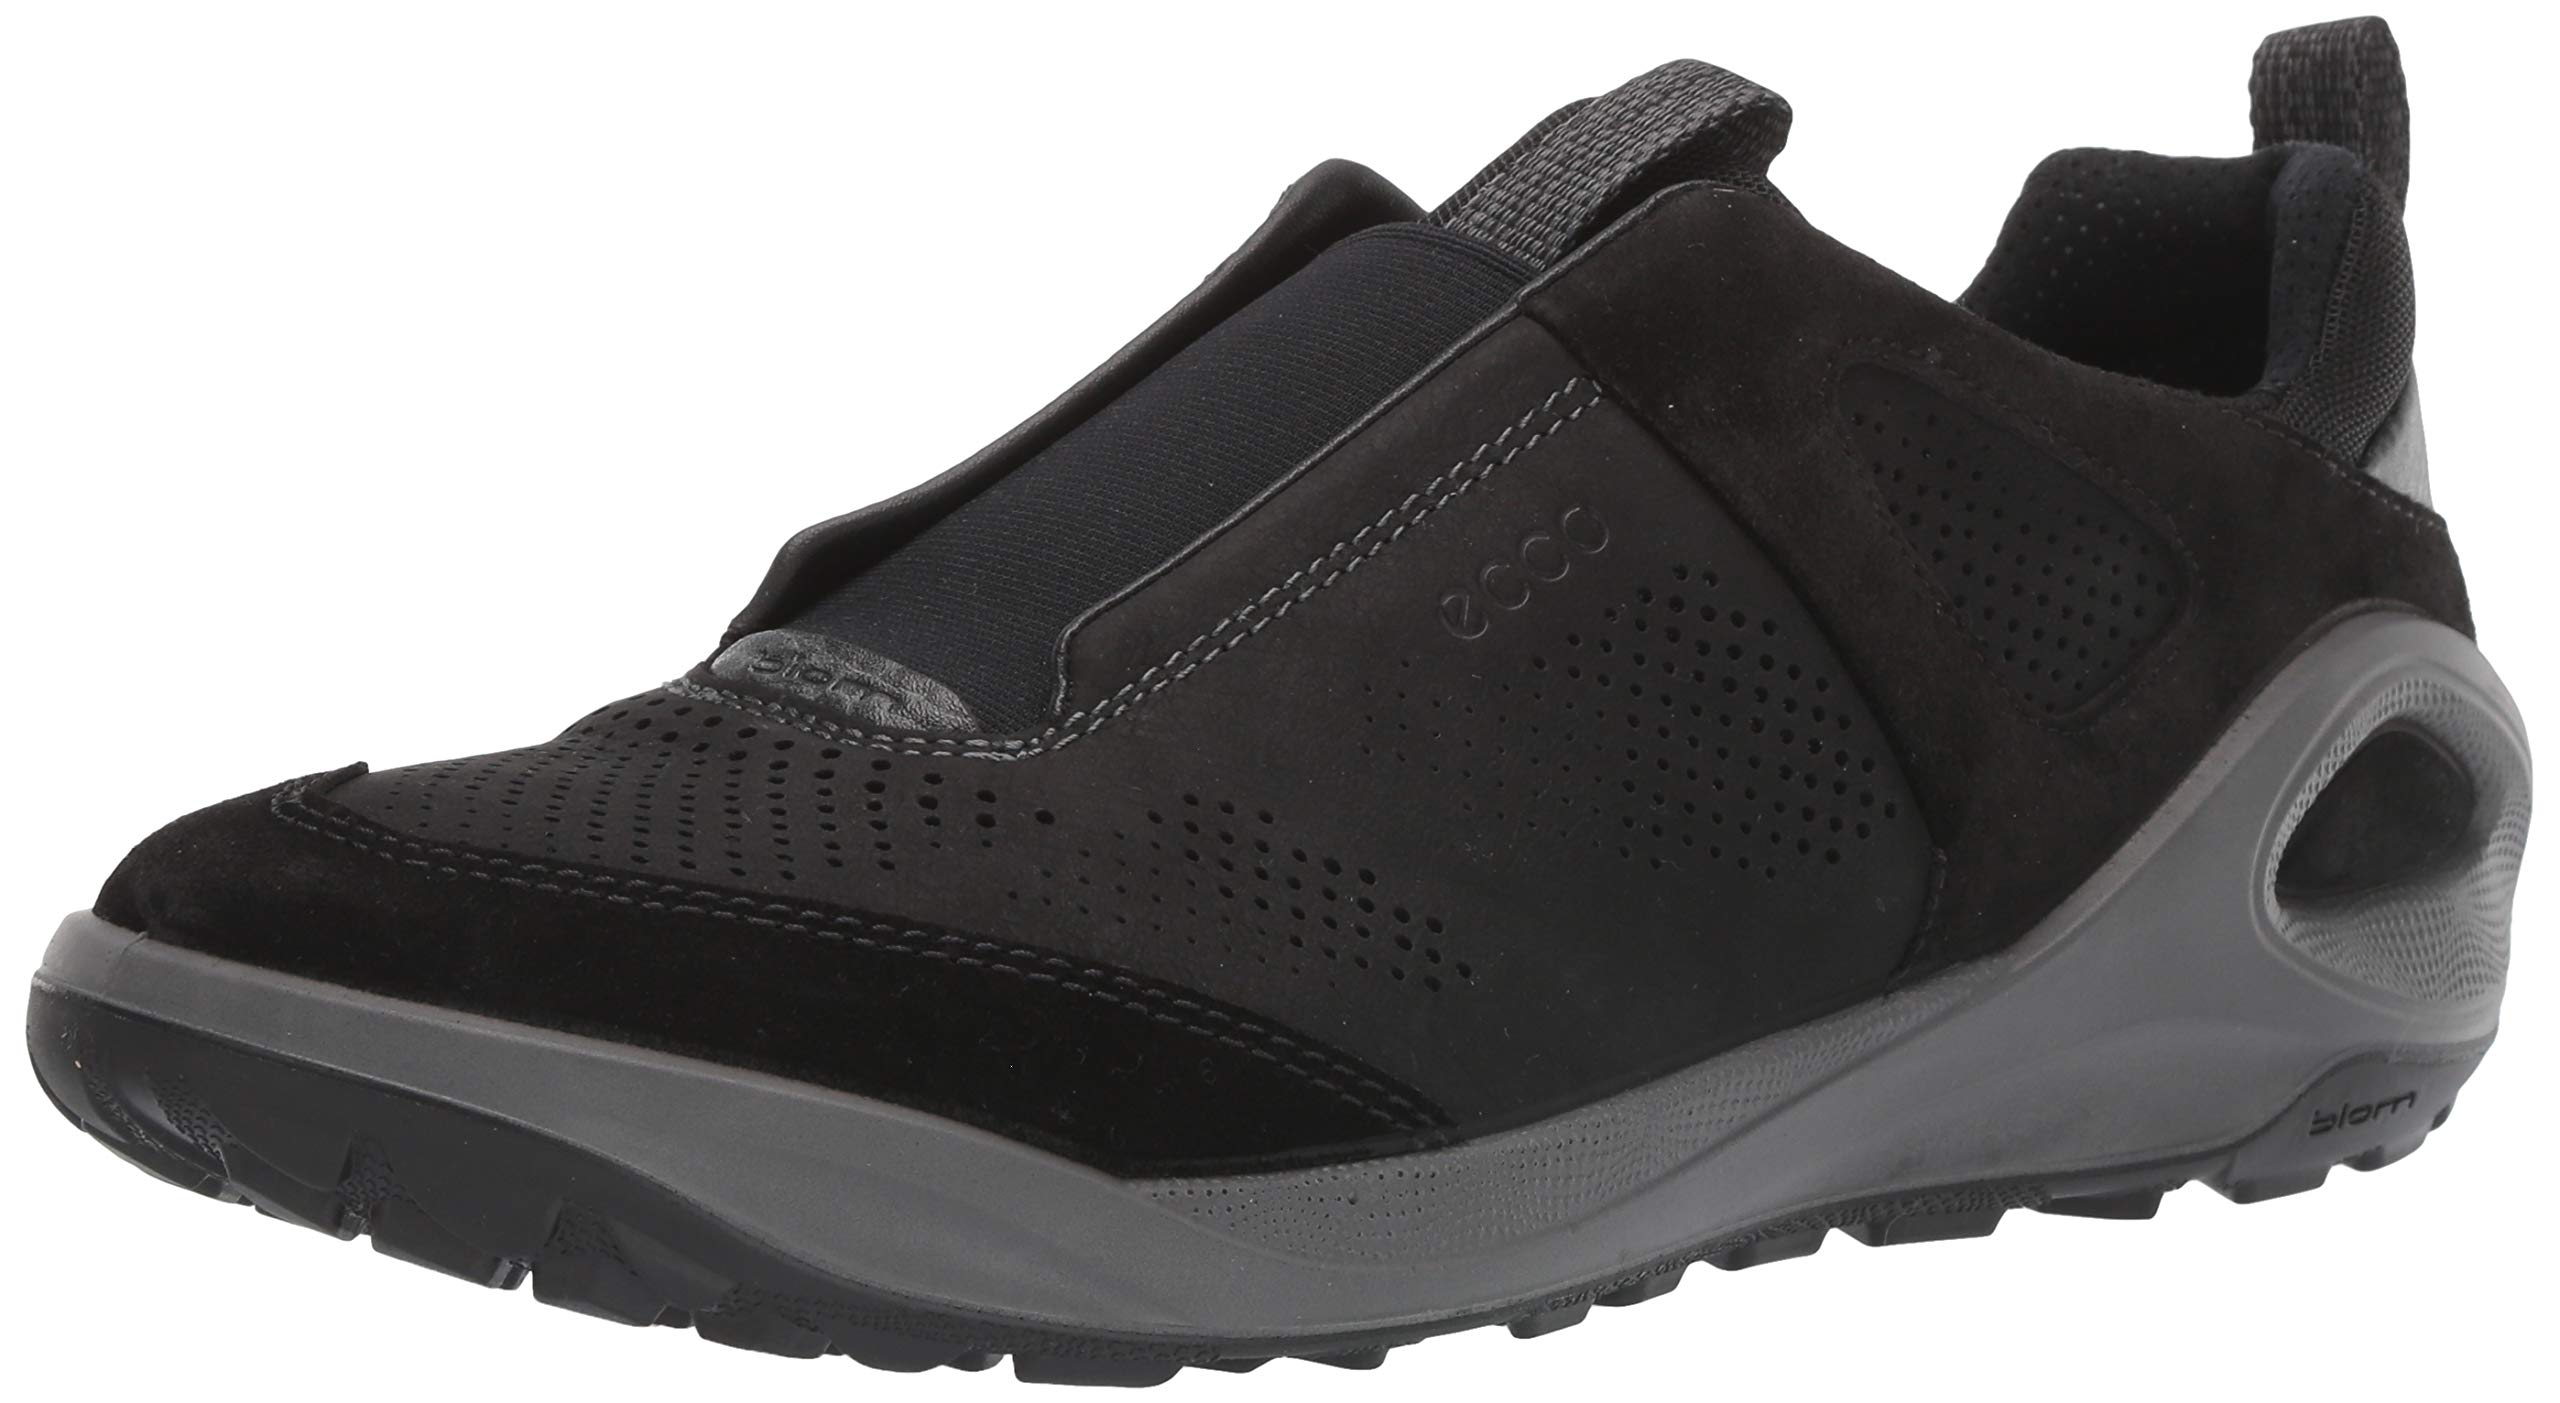 ECCO Men's Biom 2go-Outdoor Lifestyle, Multi-Sport, Water-Resistant, Slip on Hiking Shoe